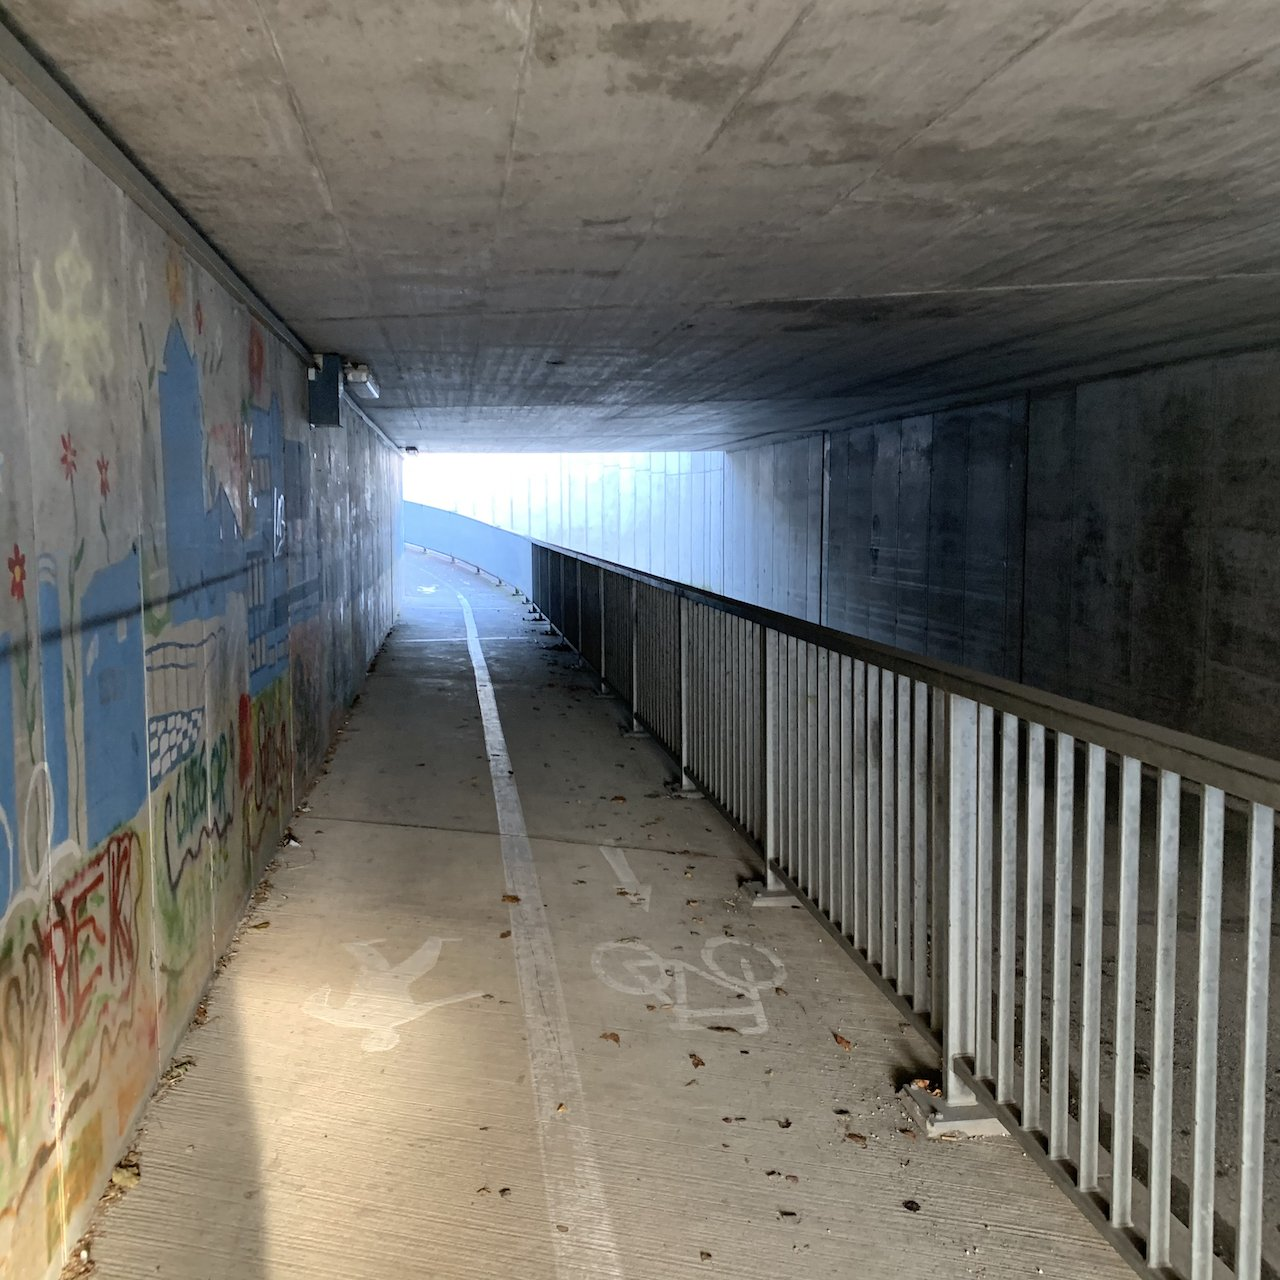 Geocache under the rail lines - not too obvious at first look - itstartswithacoffee.com  #geocache #geocaching  #geocachingAustria #geocachingAT